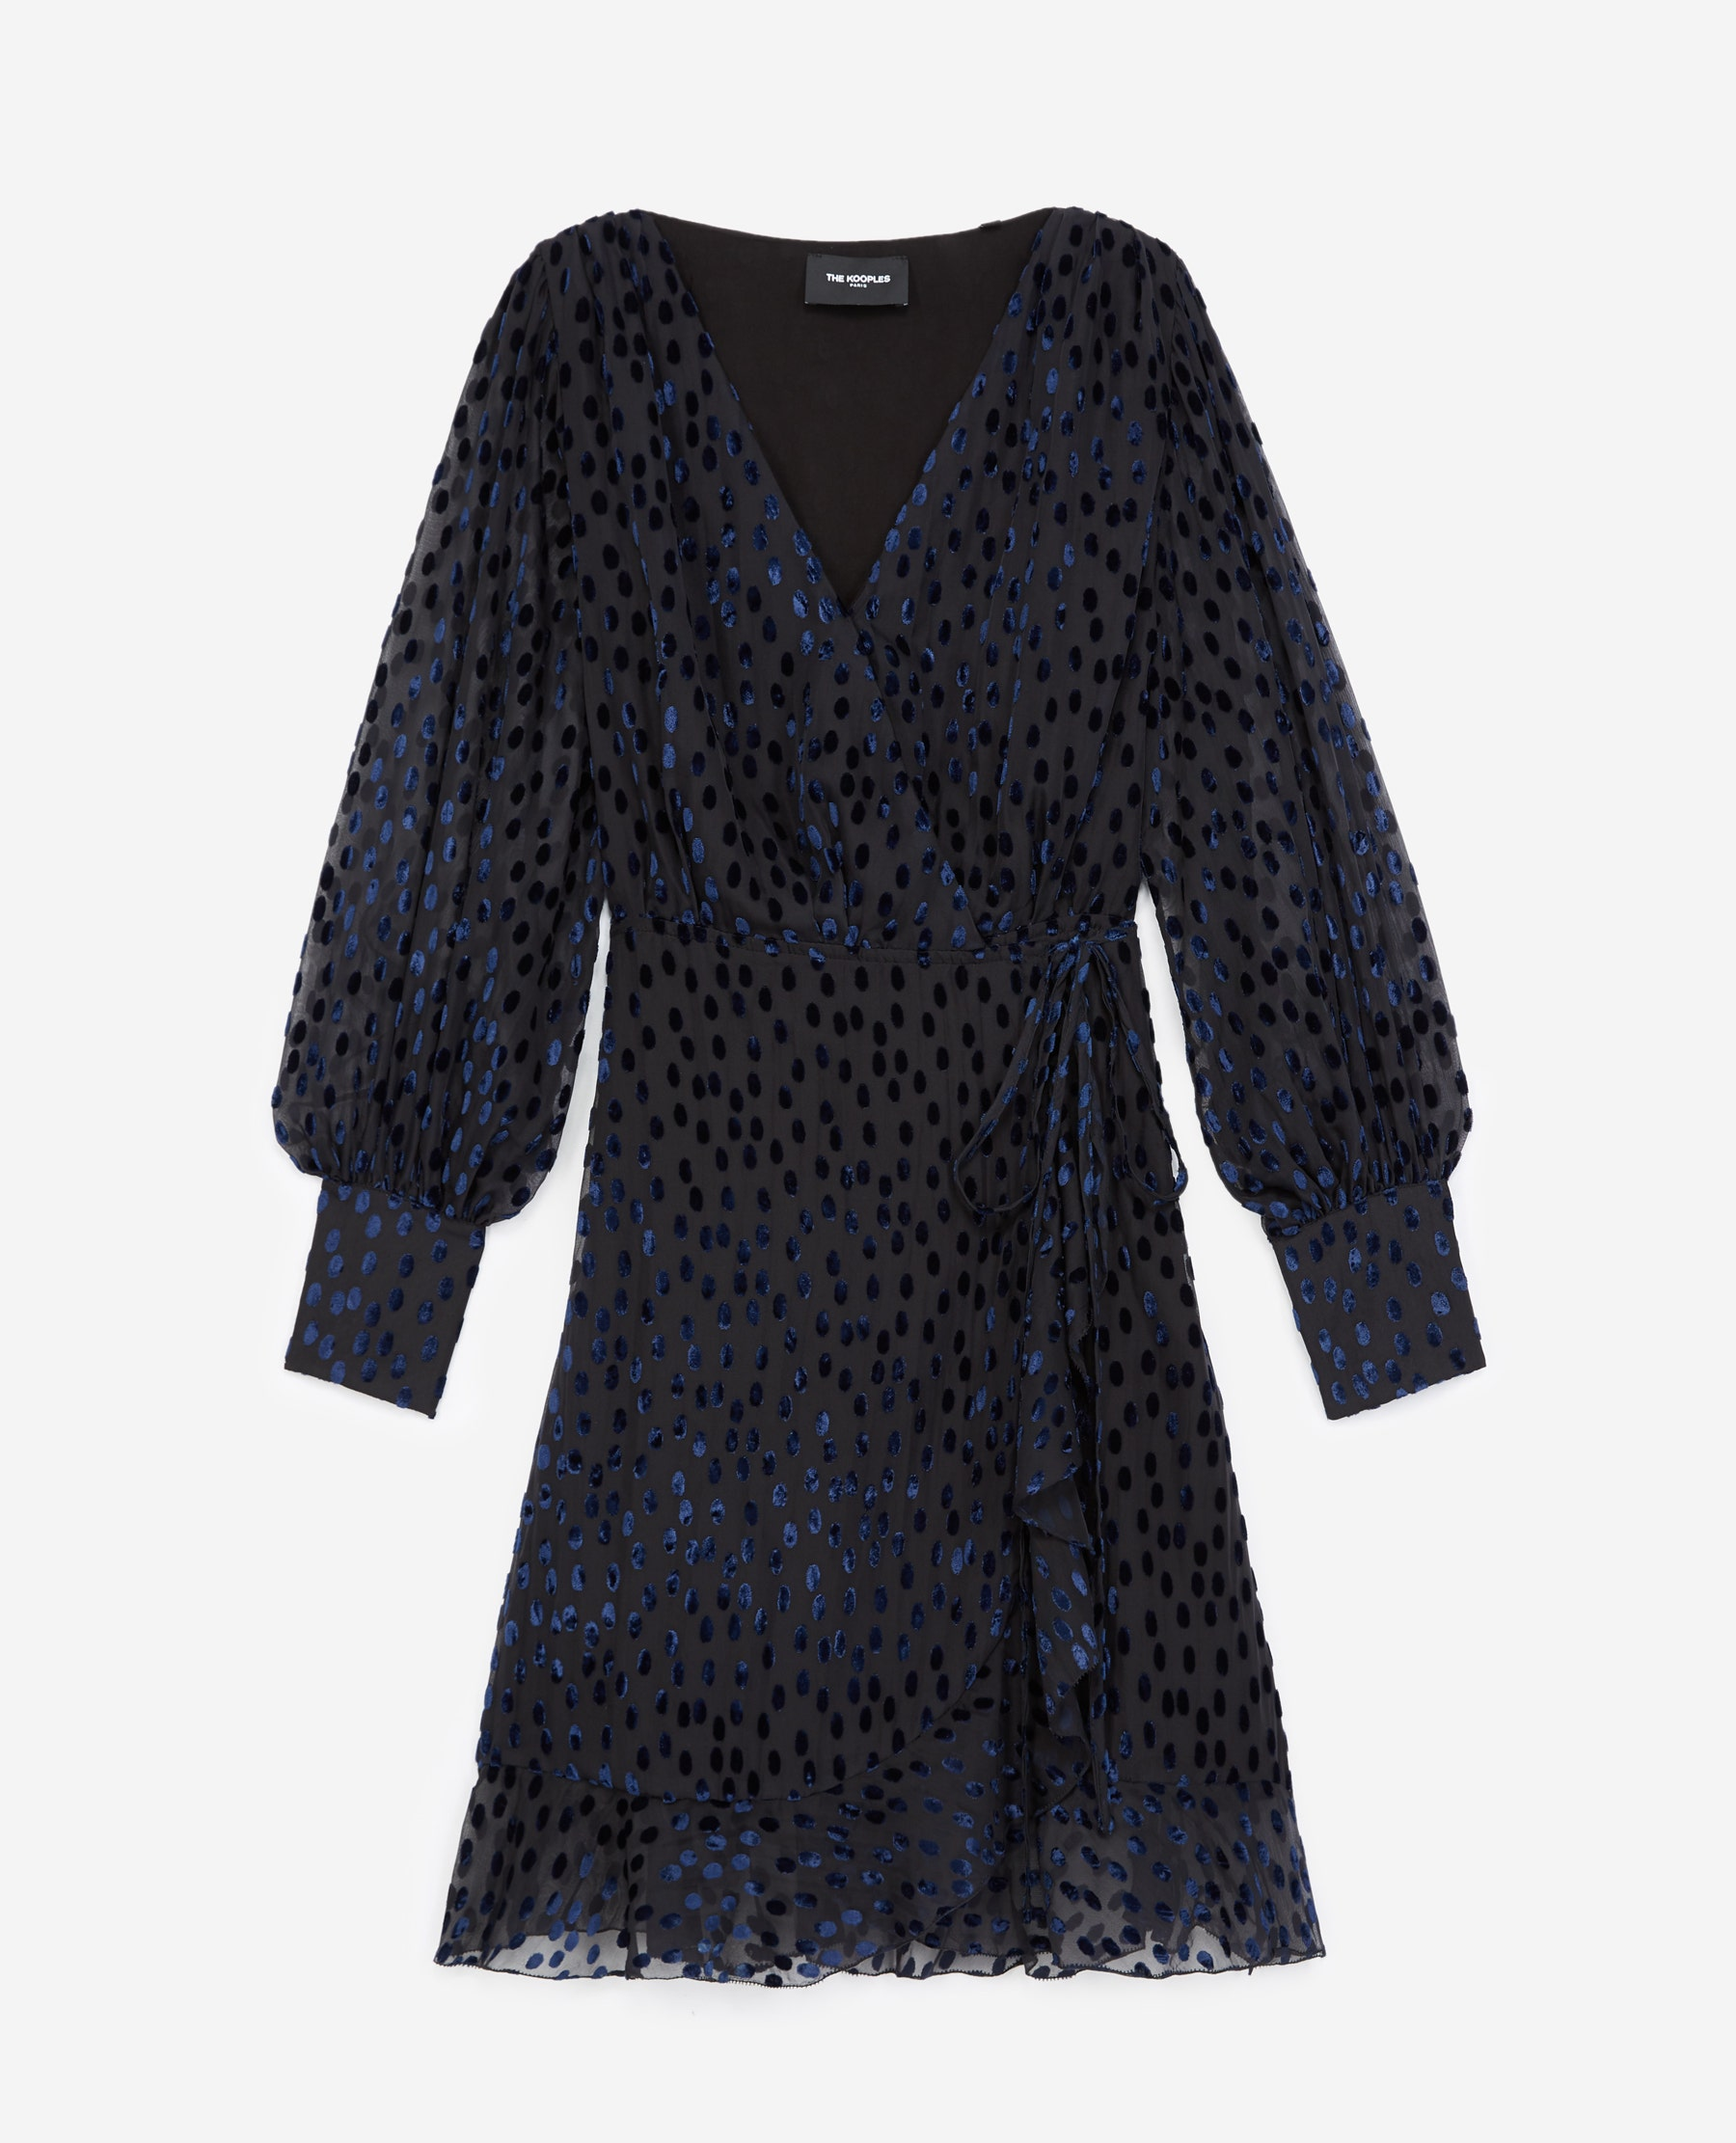 Robe portefeuille pois velours dévoré - The Kooples - Modalova